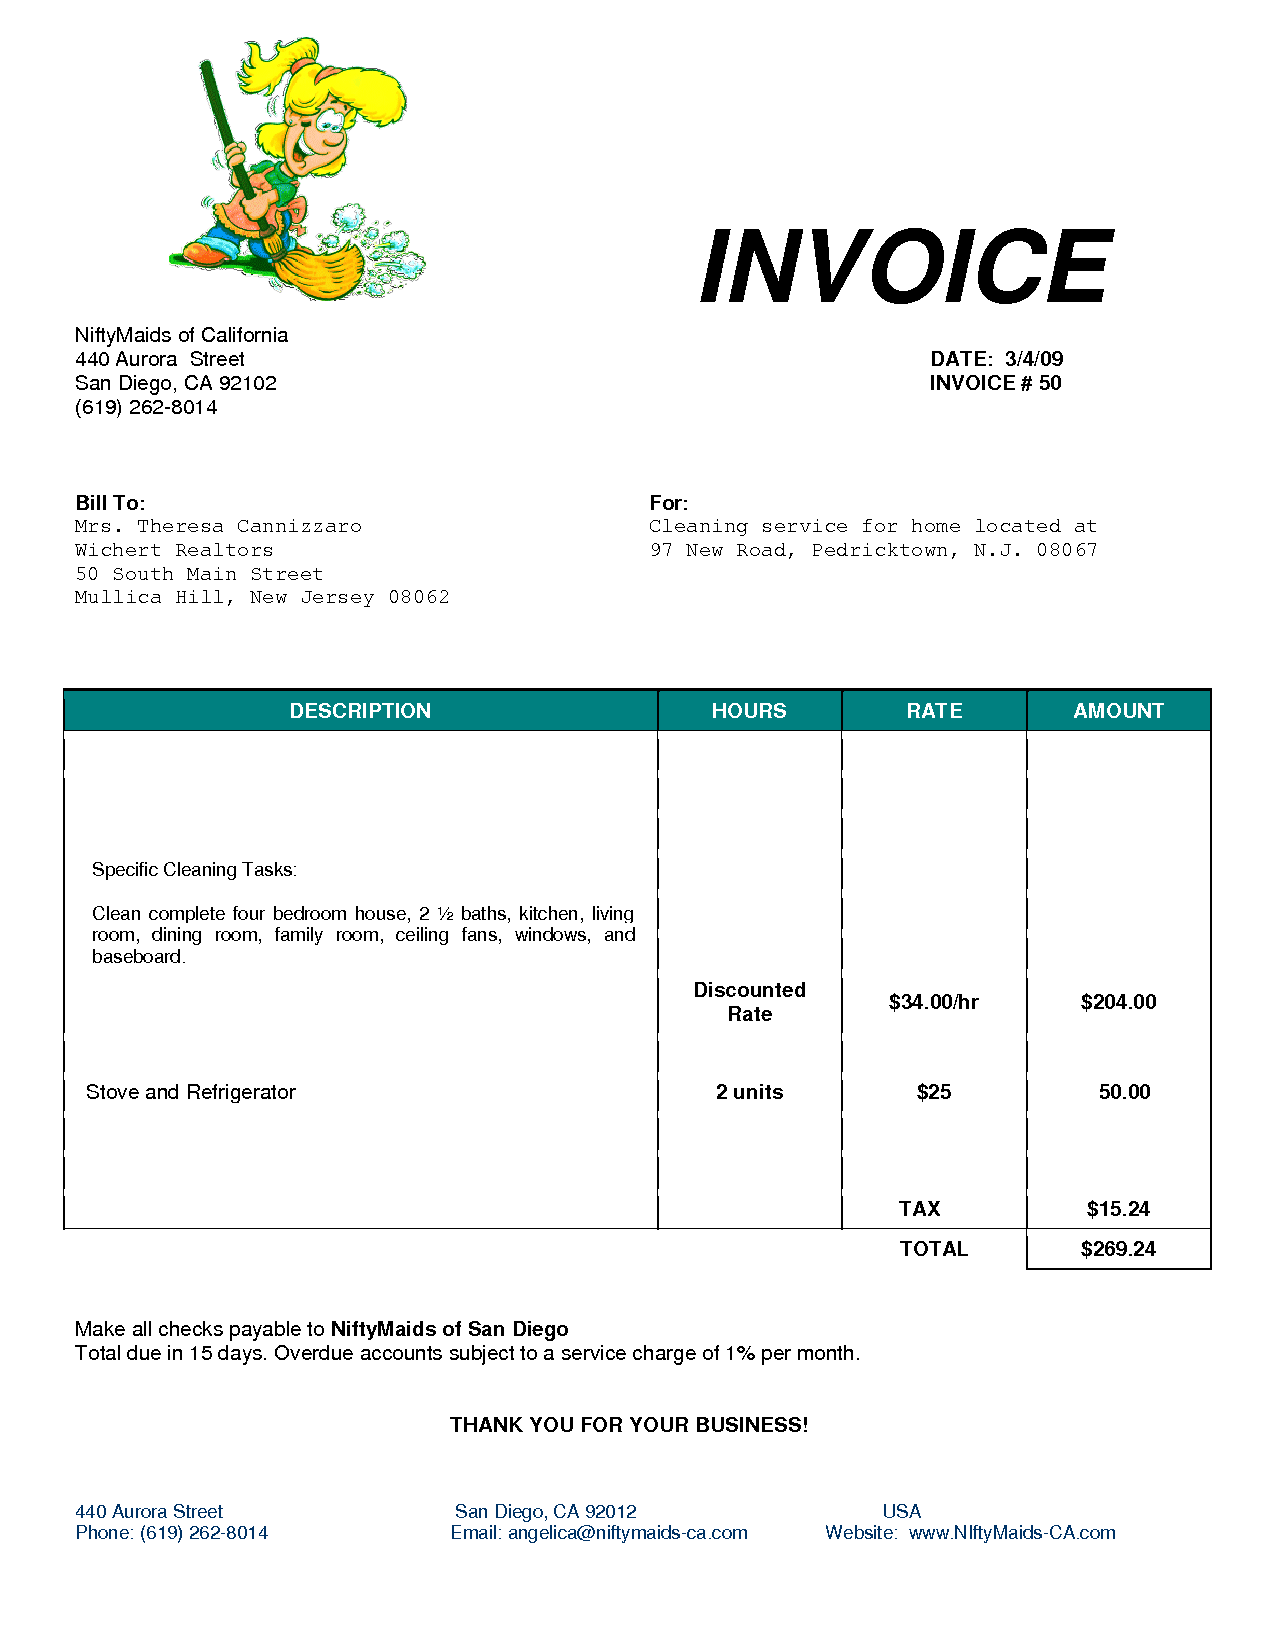 Cleaning Bill Invoice Services Invoice Ideas For The House - Invoice template for services provided